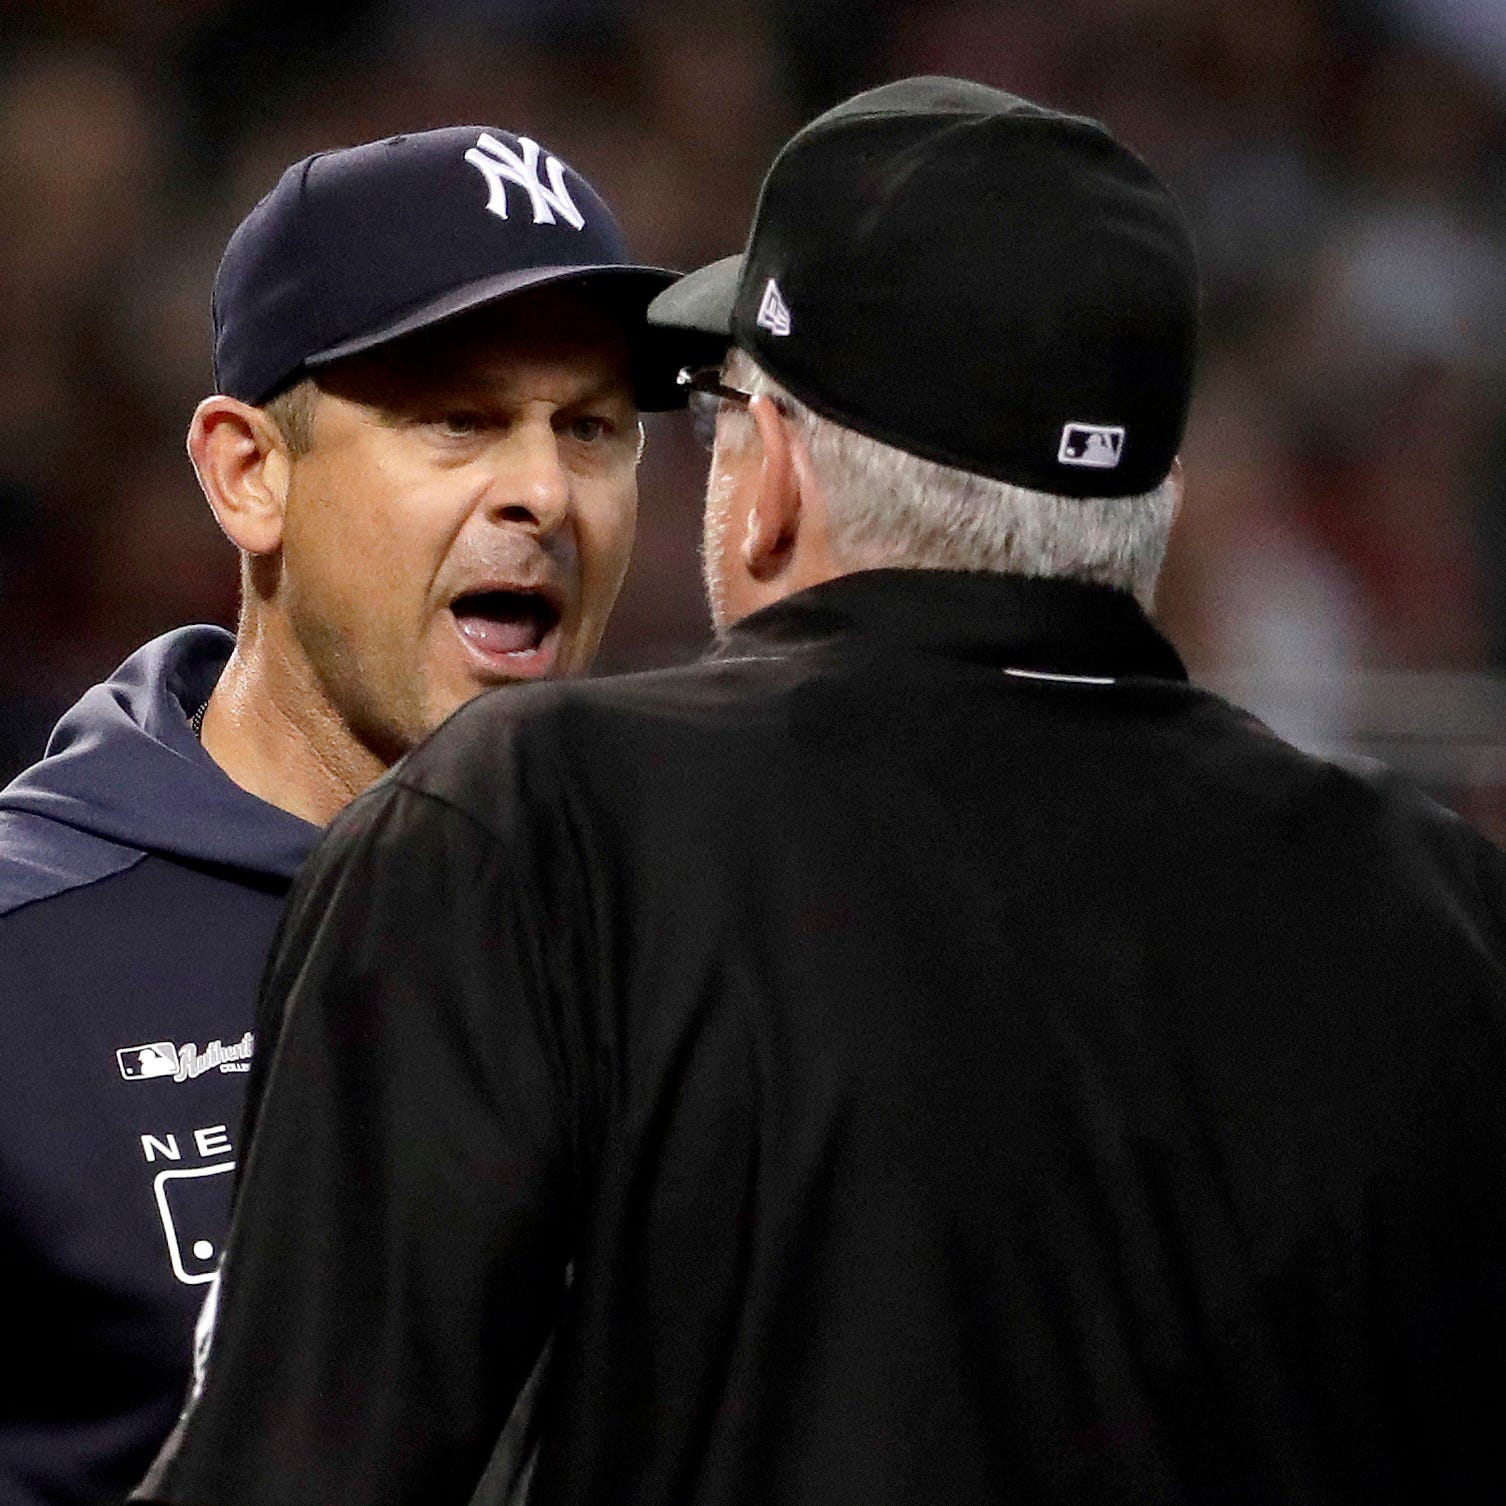 Aaron Boone ejected from New York Yankees game against Arizona Diamondbacks